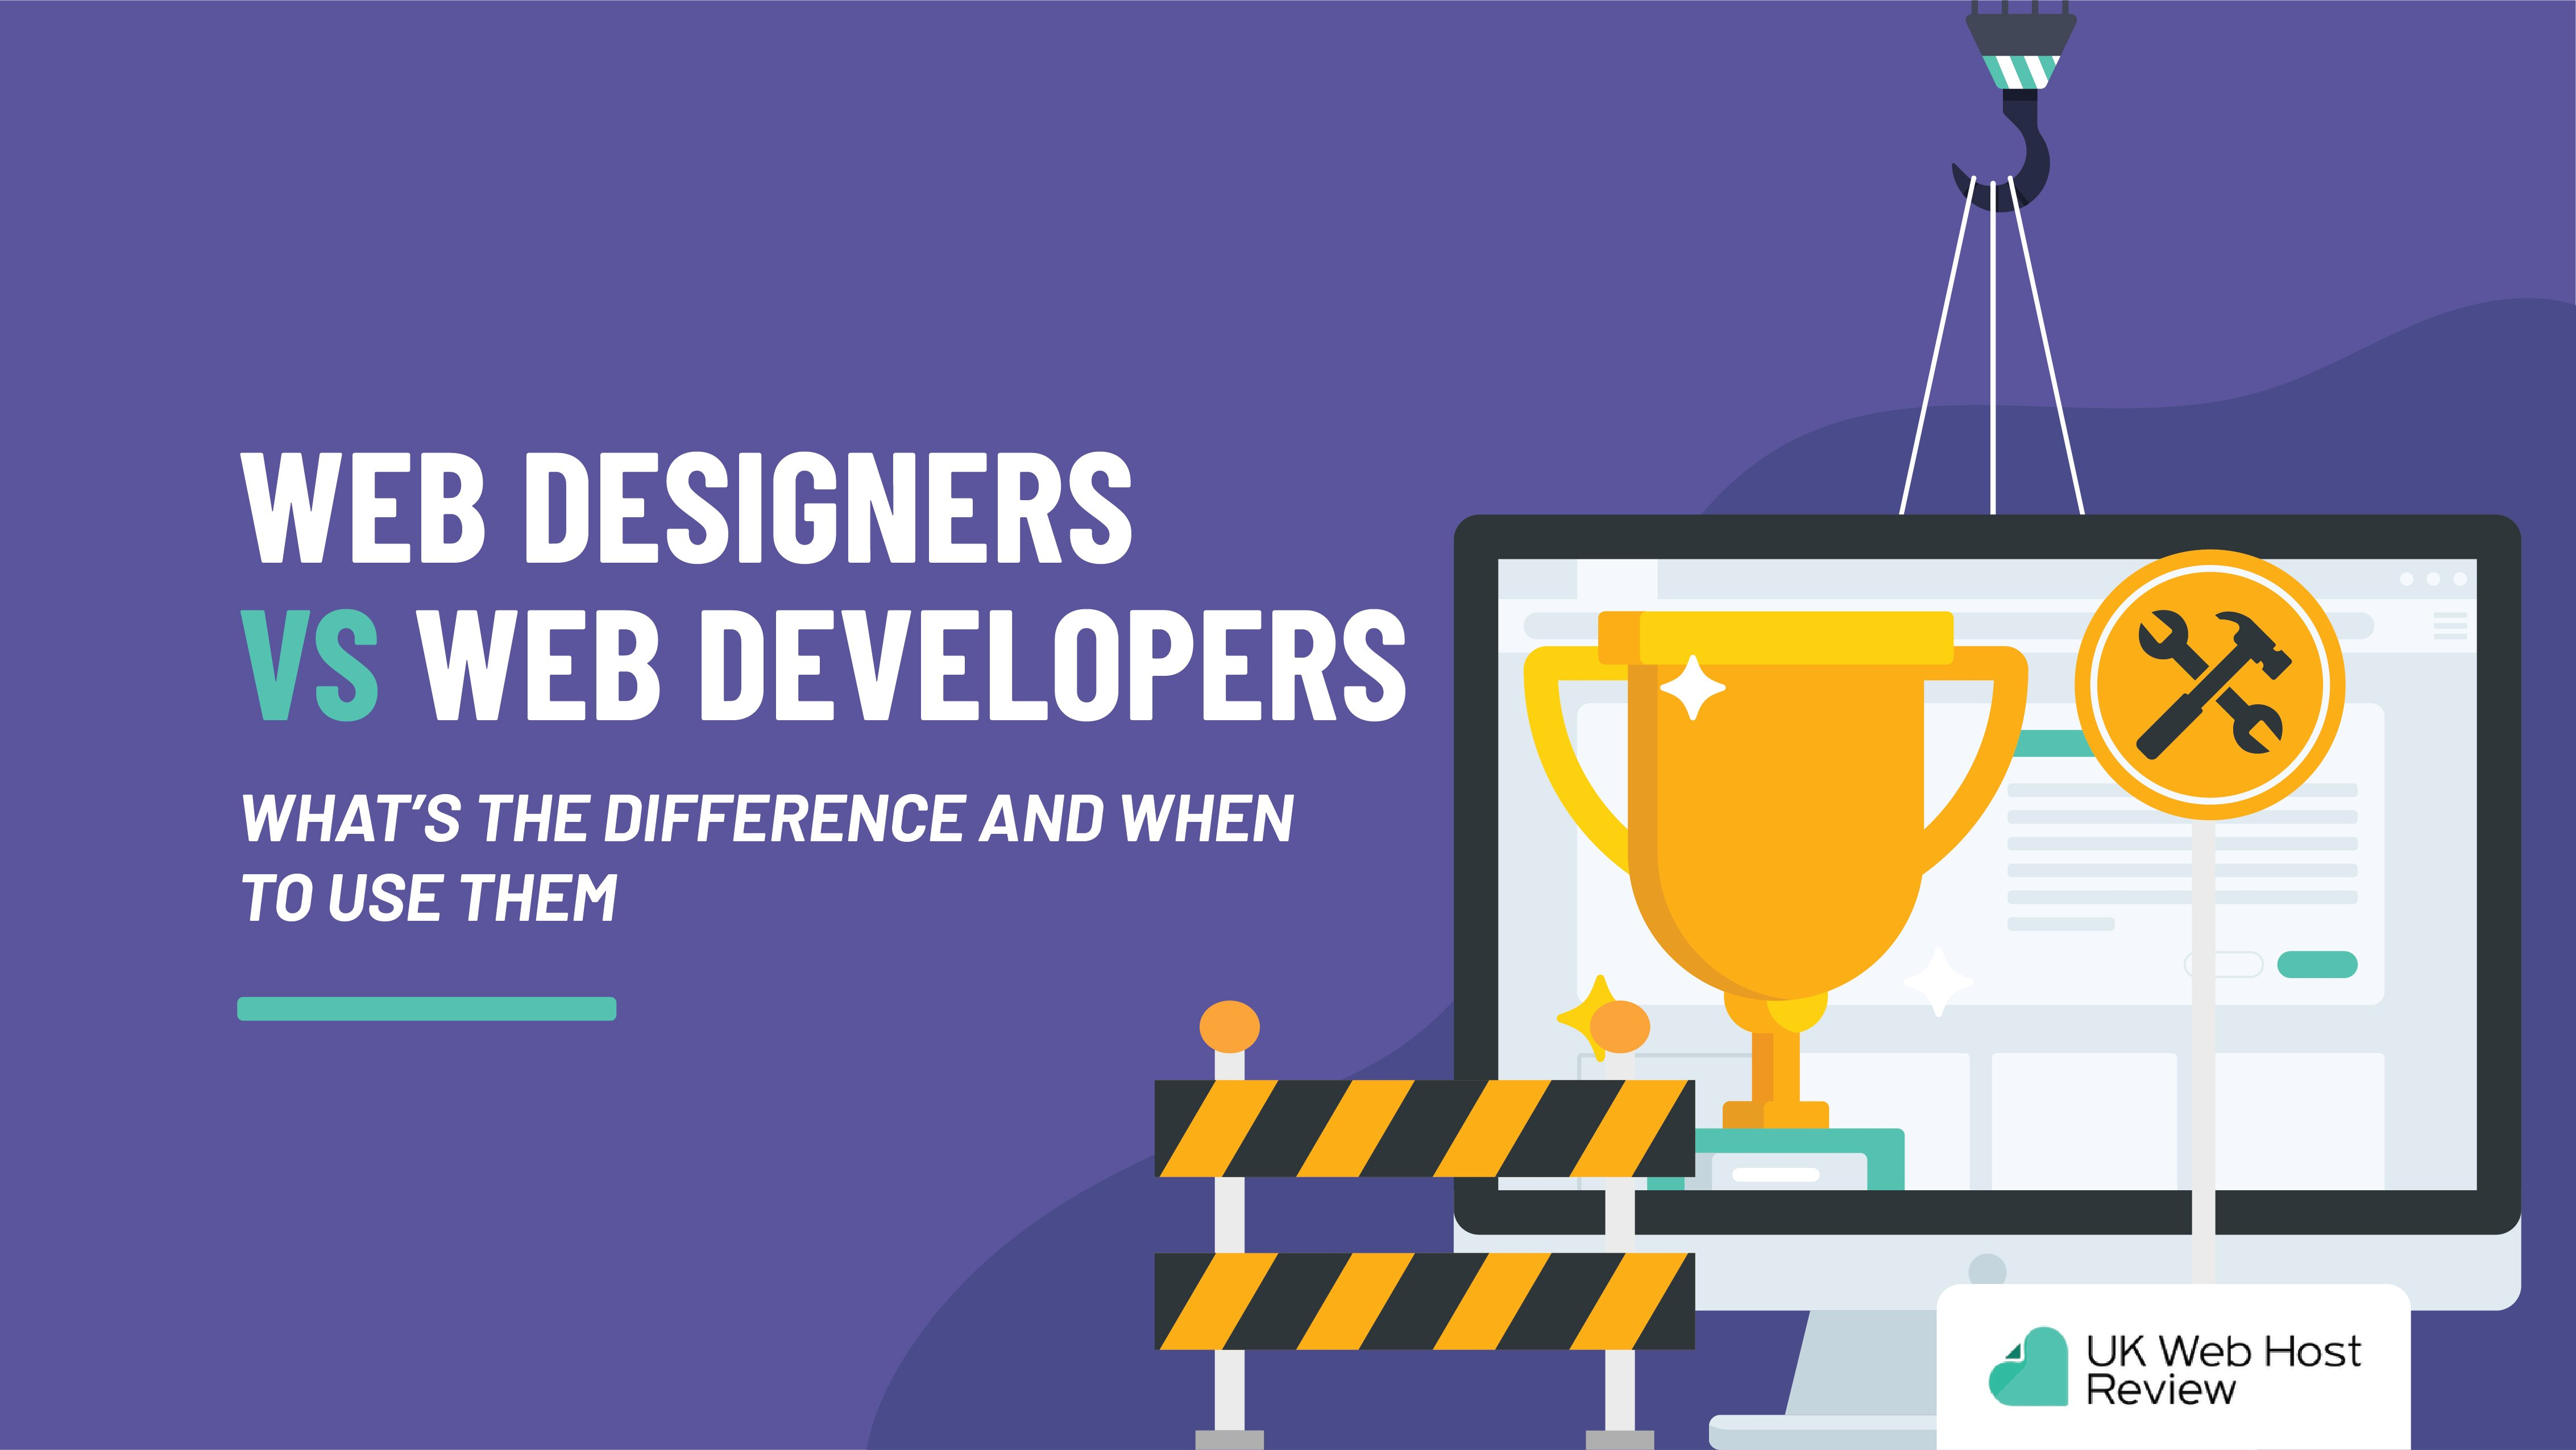 Web Designers Vs Web Developers: What's the Difference?